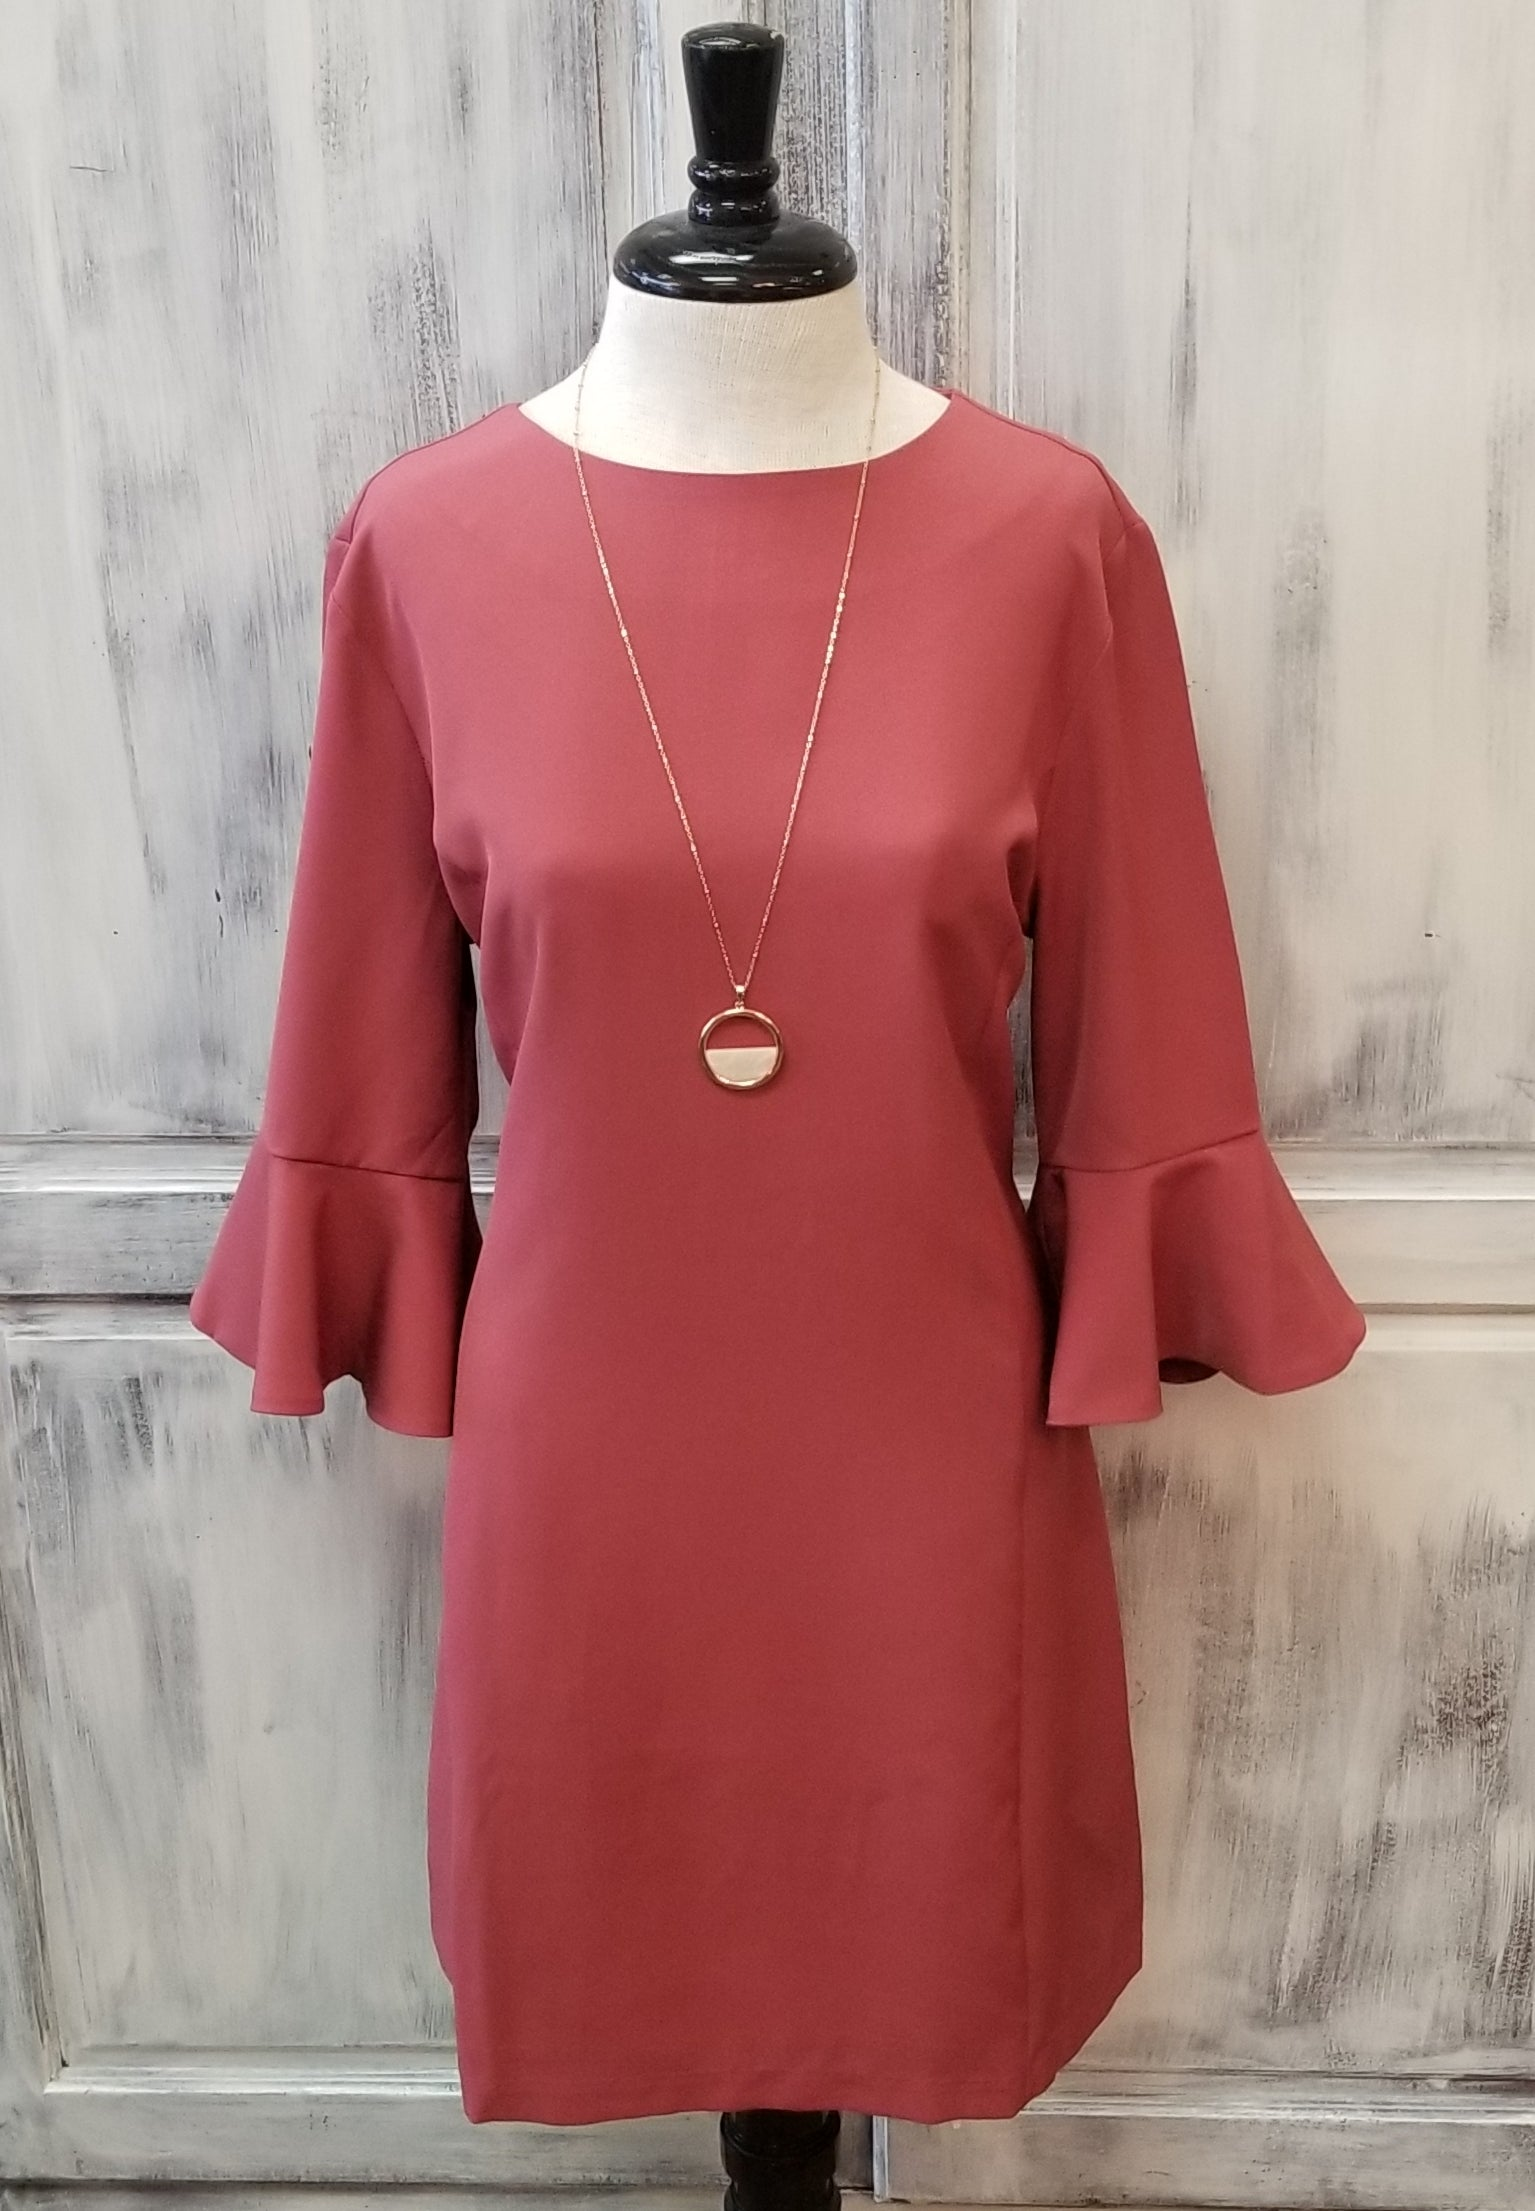 Charlie Paige Rose Bell Sleeve Dress